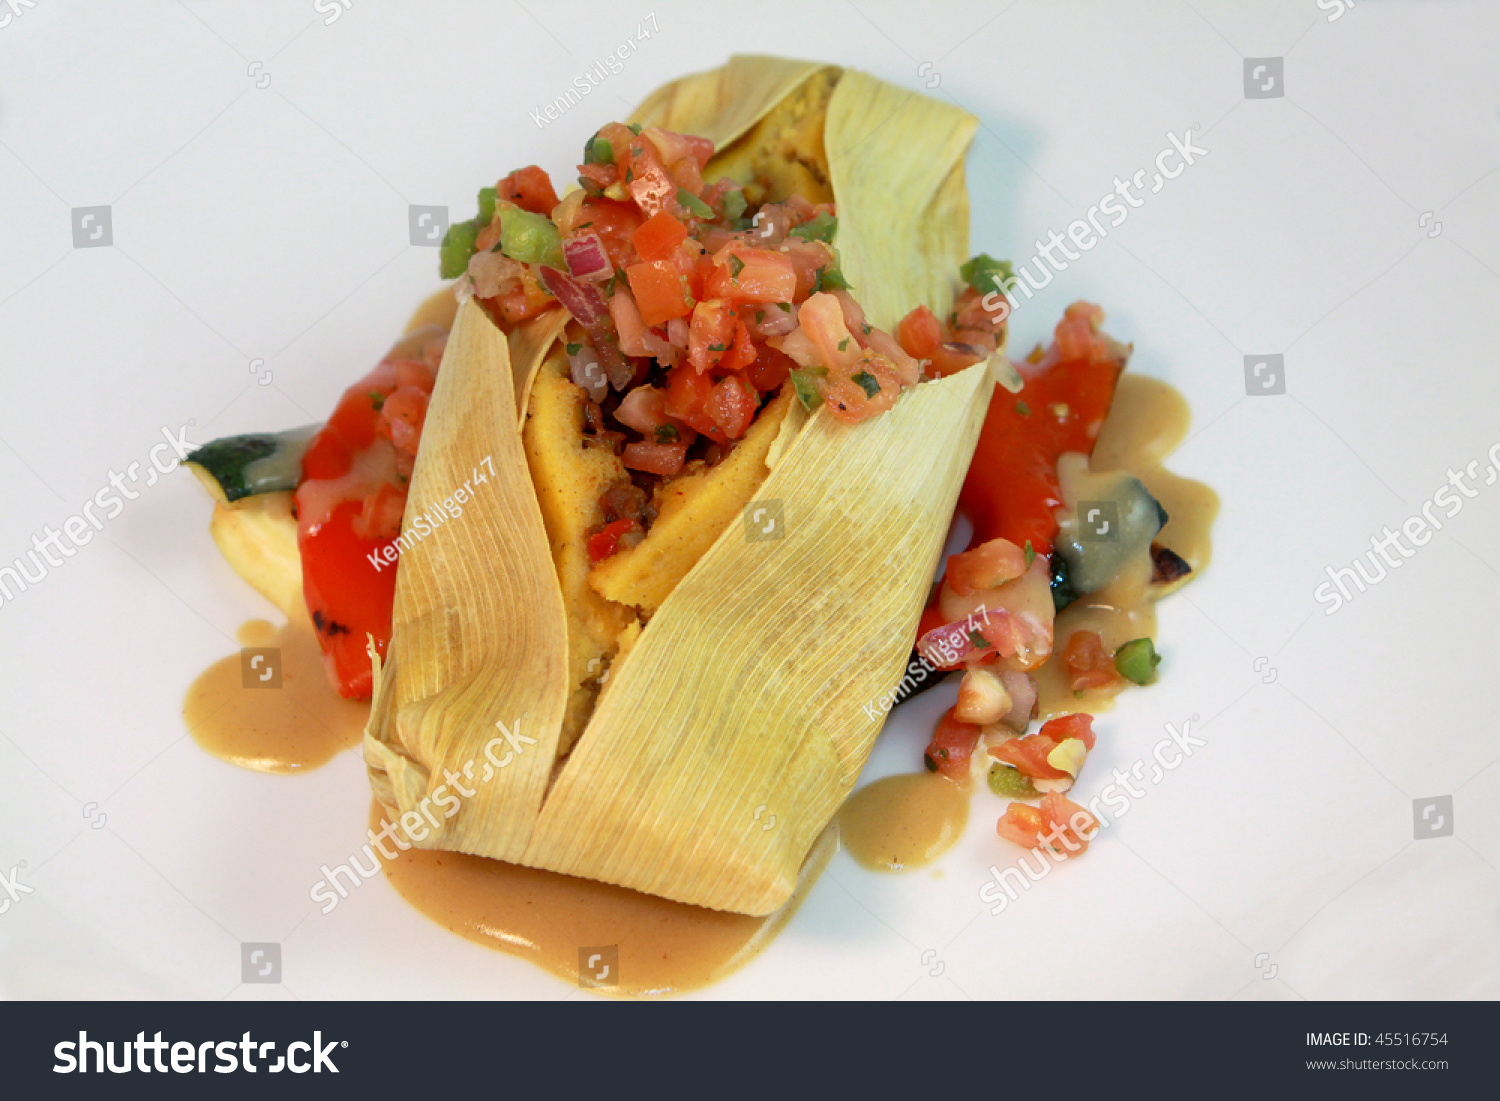 Vegetarian Meals At A Fine Dining Resturant Stock Photo 45516754 Shutterstock